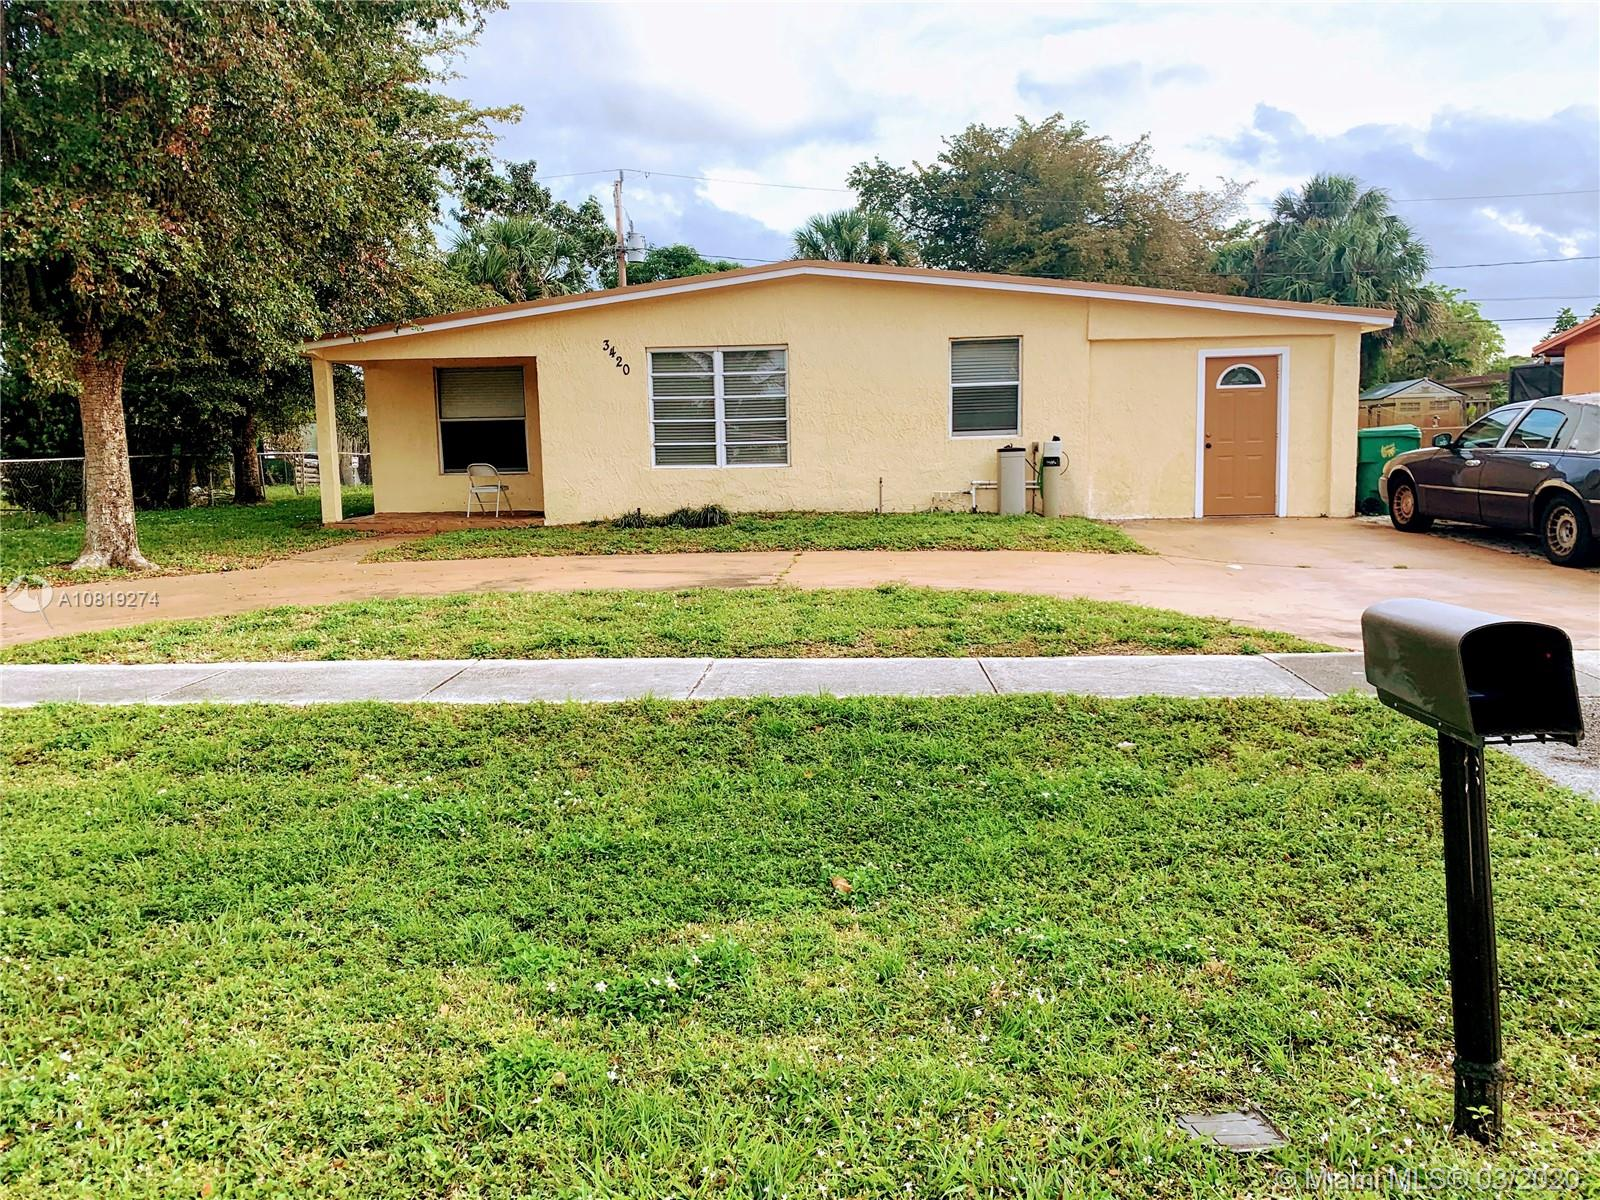 BEAUTIFUL  HOUSE TOTALLY RENOVATED 4 BED, 2.5  BATH.PRICED TO SELL QUICK!NEW AC, NEW KITCHEN, NEW FLOORS, OPEN LAY OUT, FAMILY ROOM, LIVING ROOM, DINING ROOM.